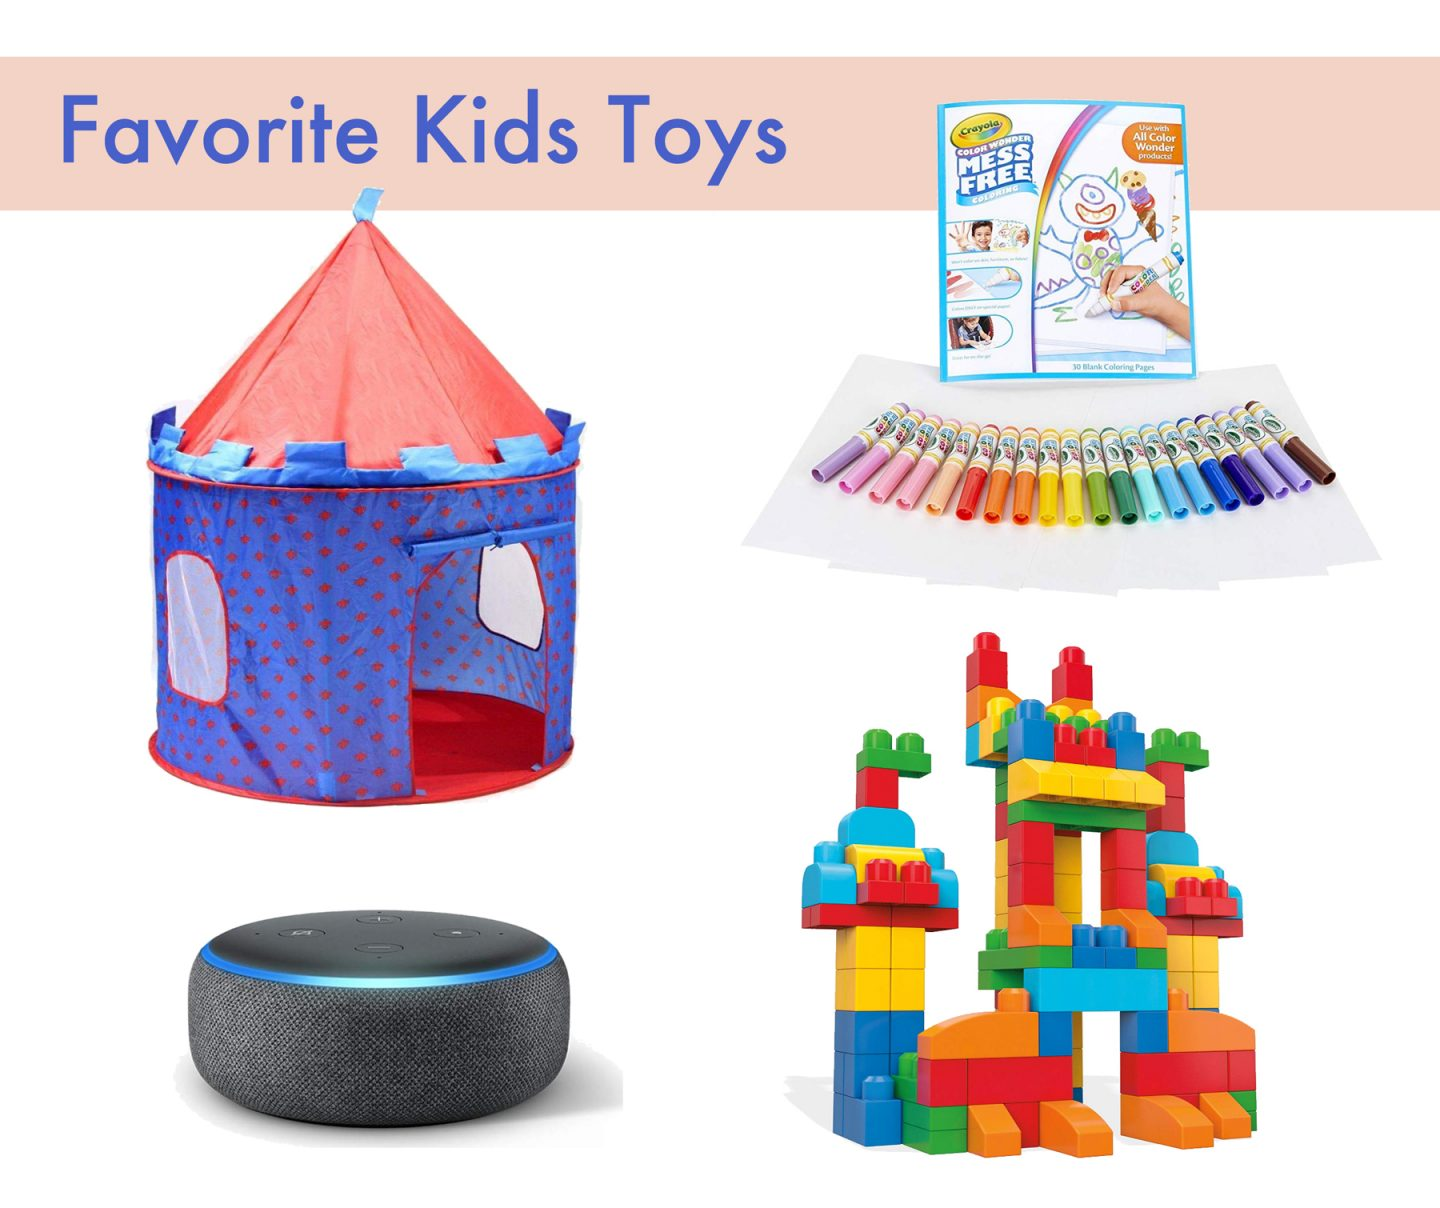 Favorite Toys for Kids